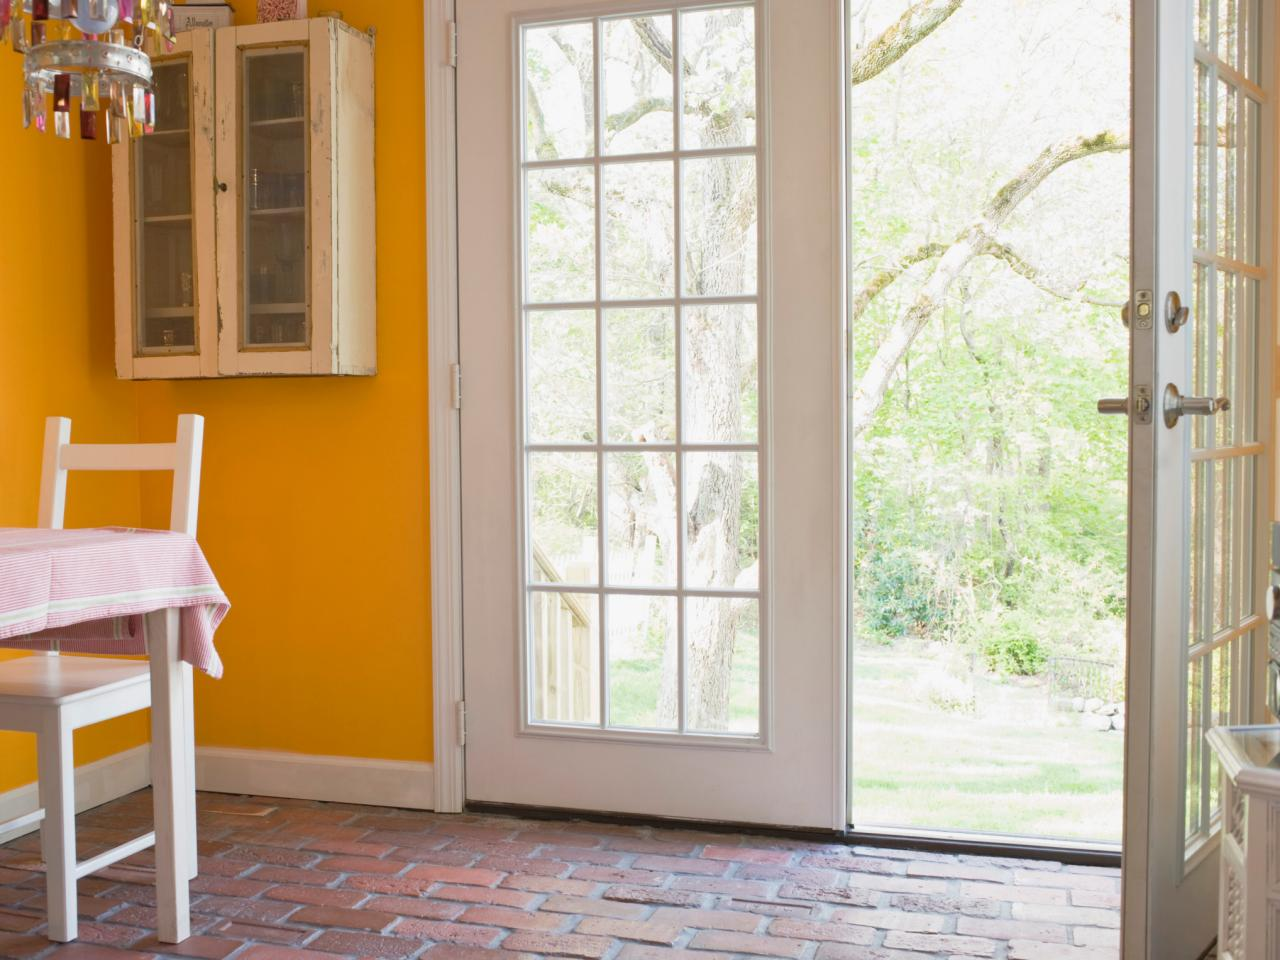 How to Install French Doors & How to Install French Doors | HGTV pezcame.com